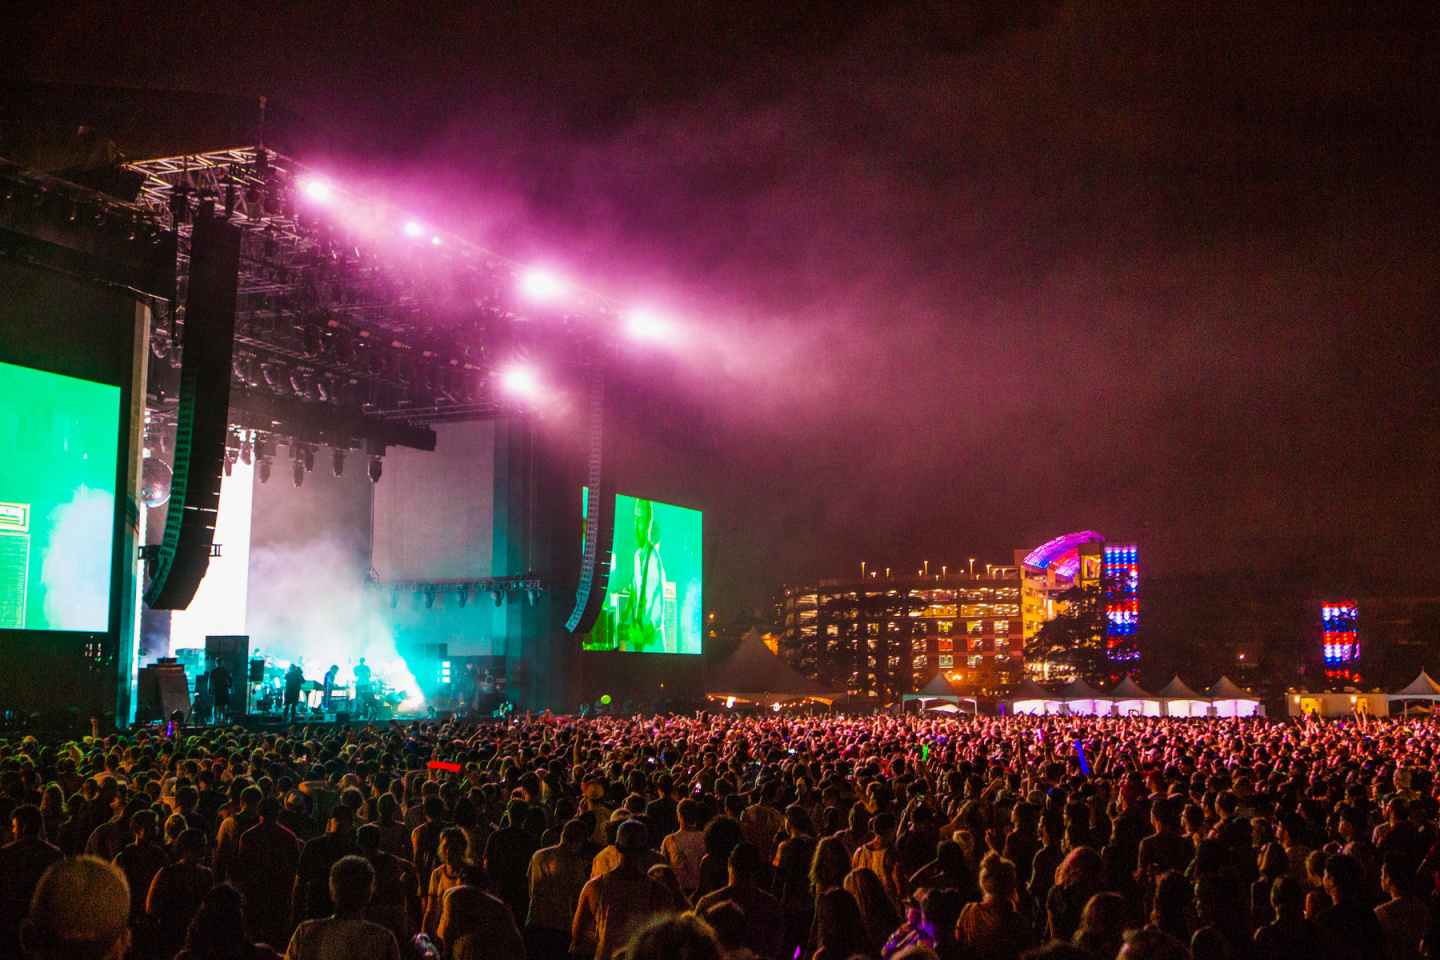 15 Portraits From New York's Panorama Music Festival To Look At In Front Of Your AC Unit